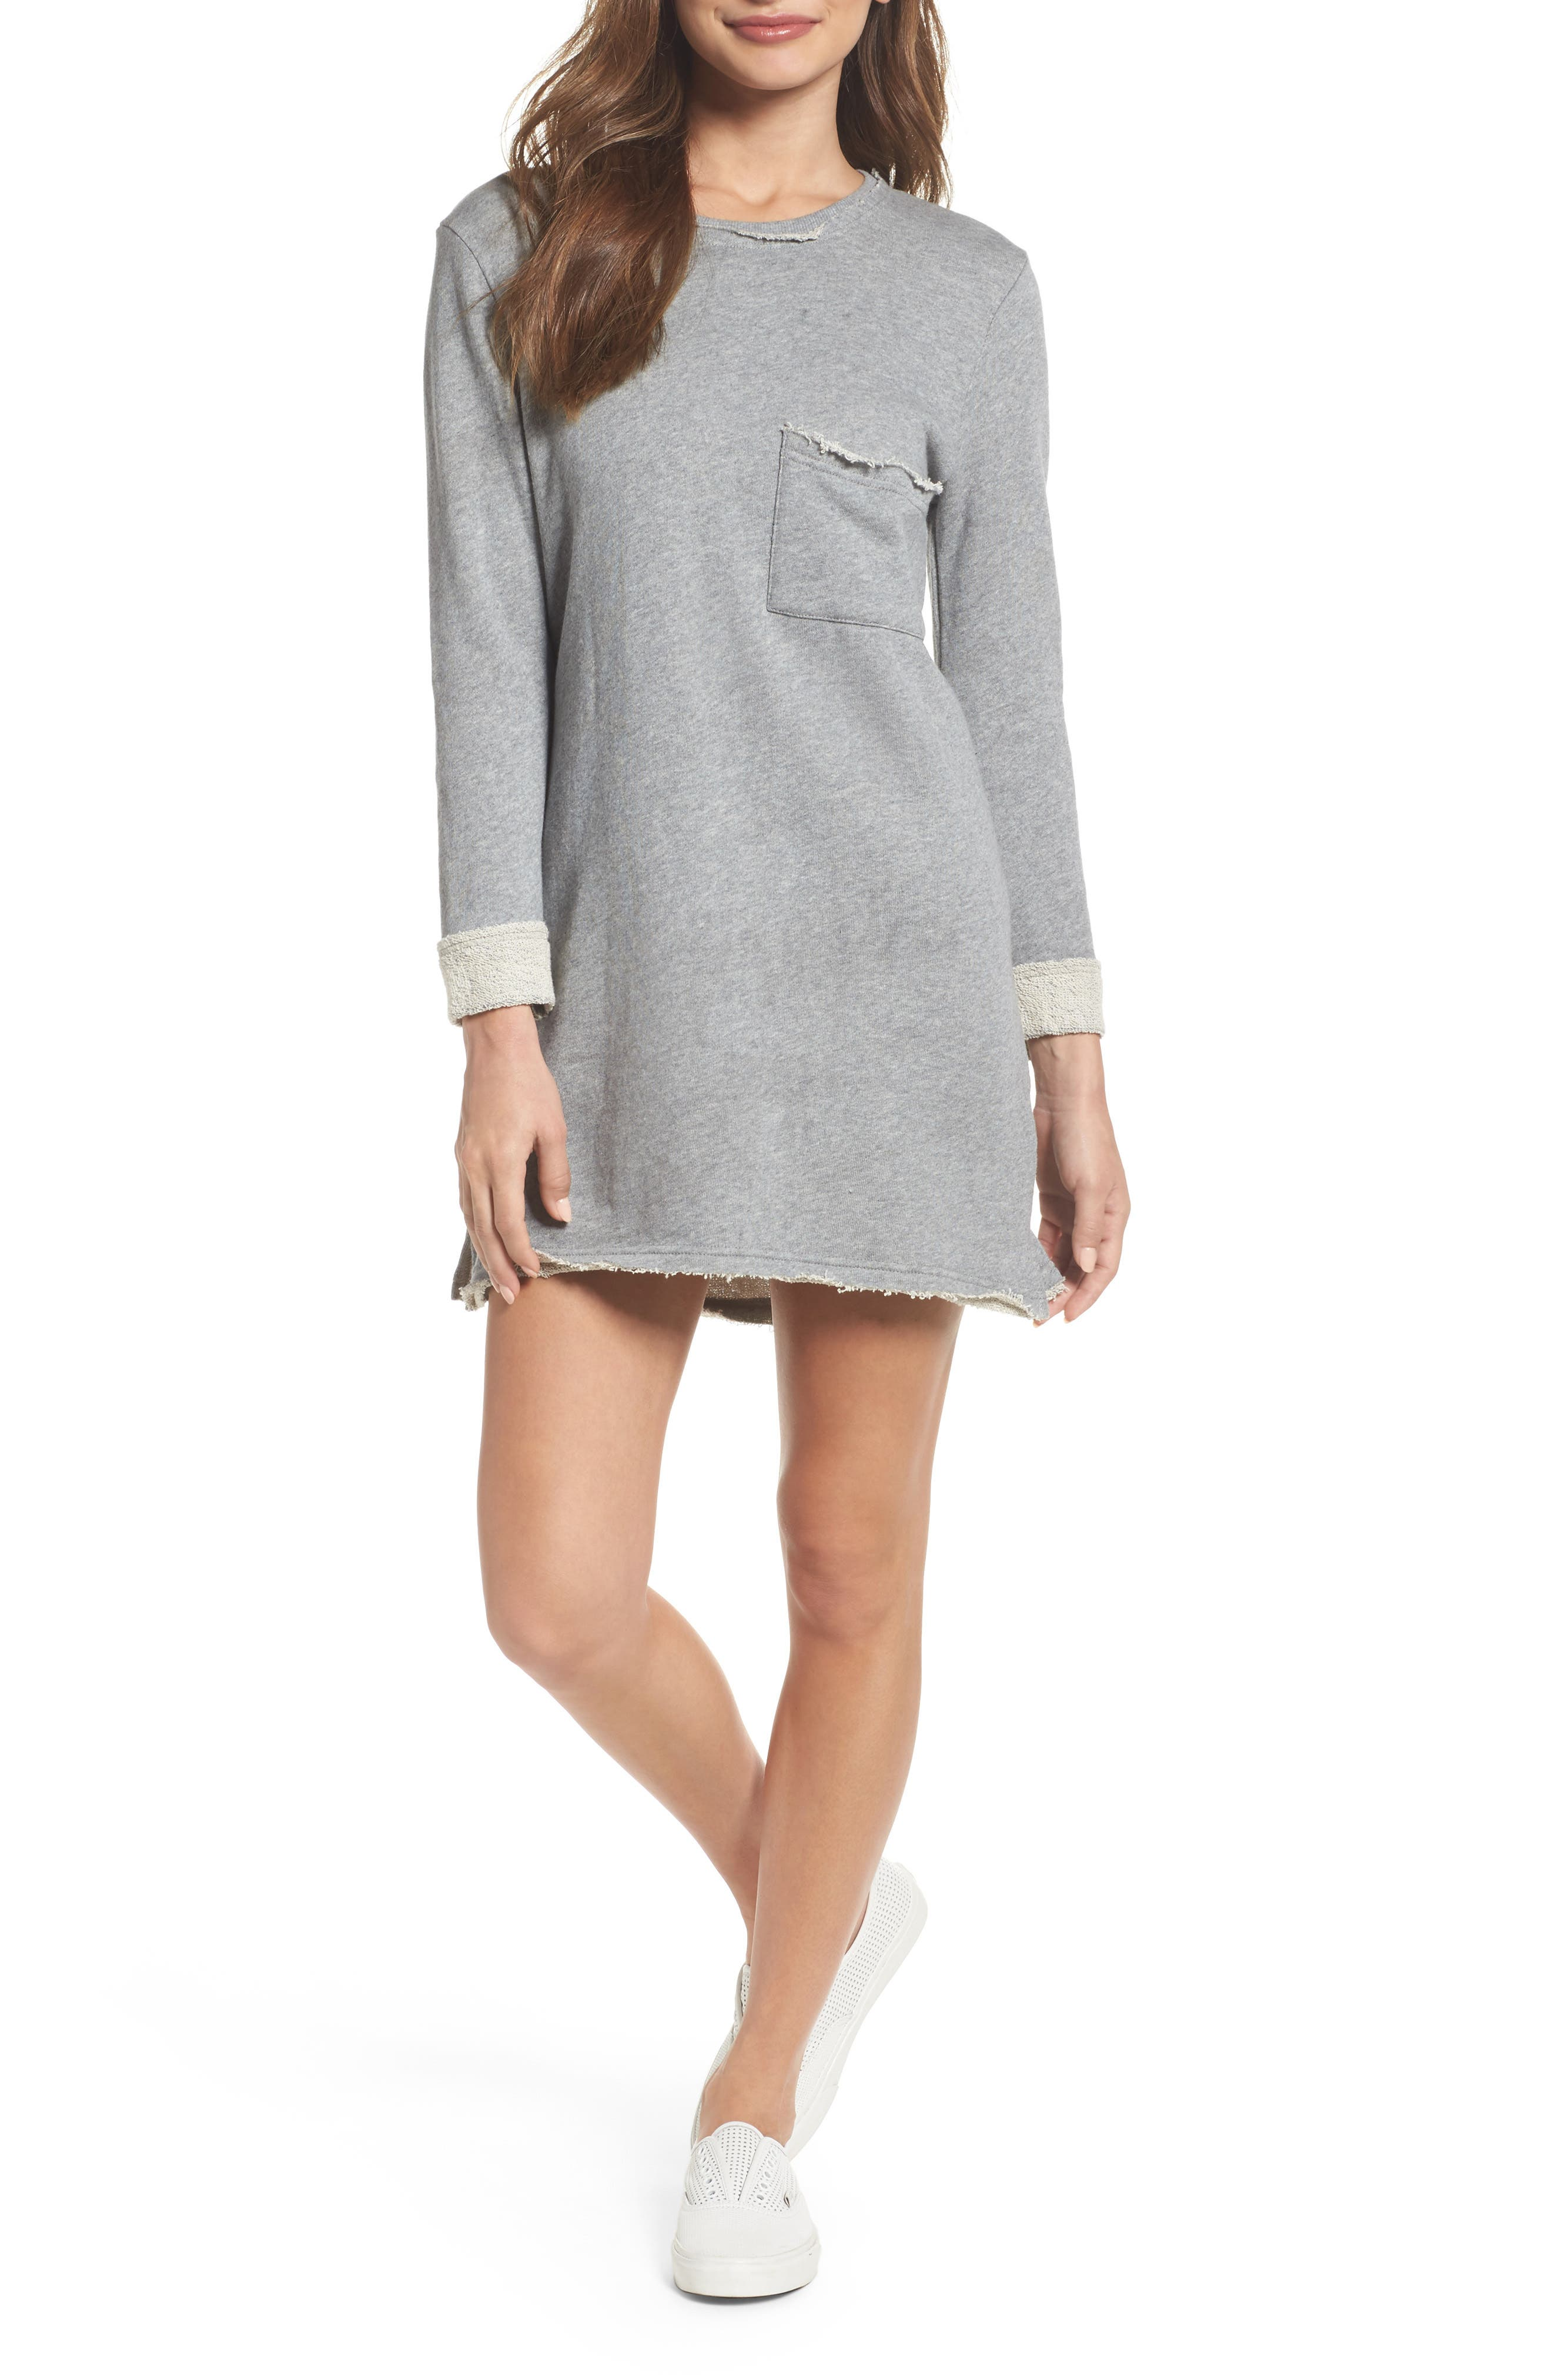 Women's Cotton Casual Dresses | Nordstrom